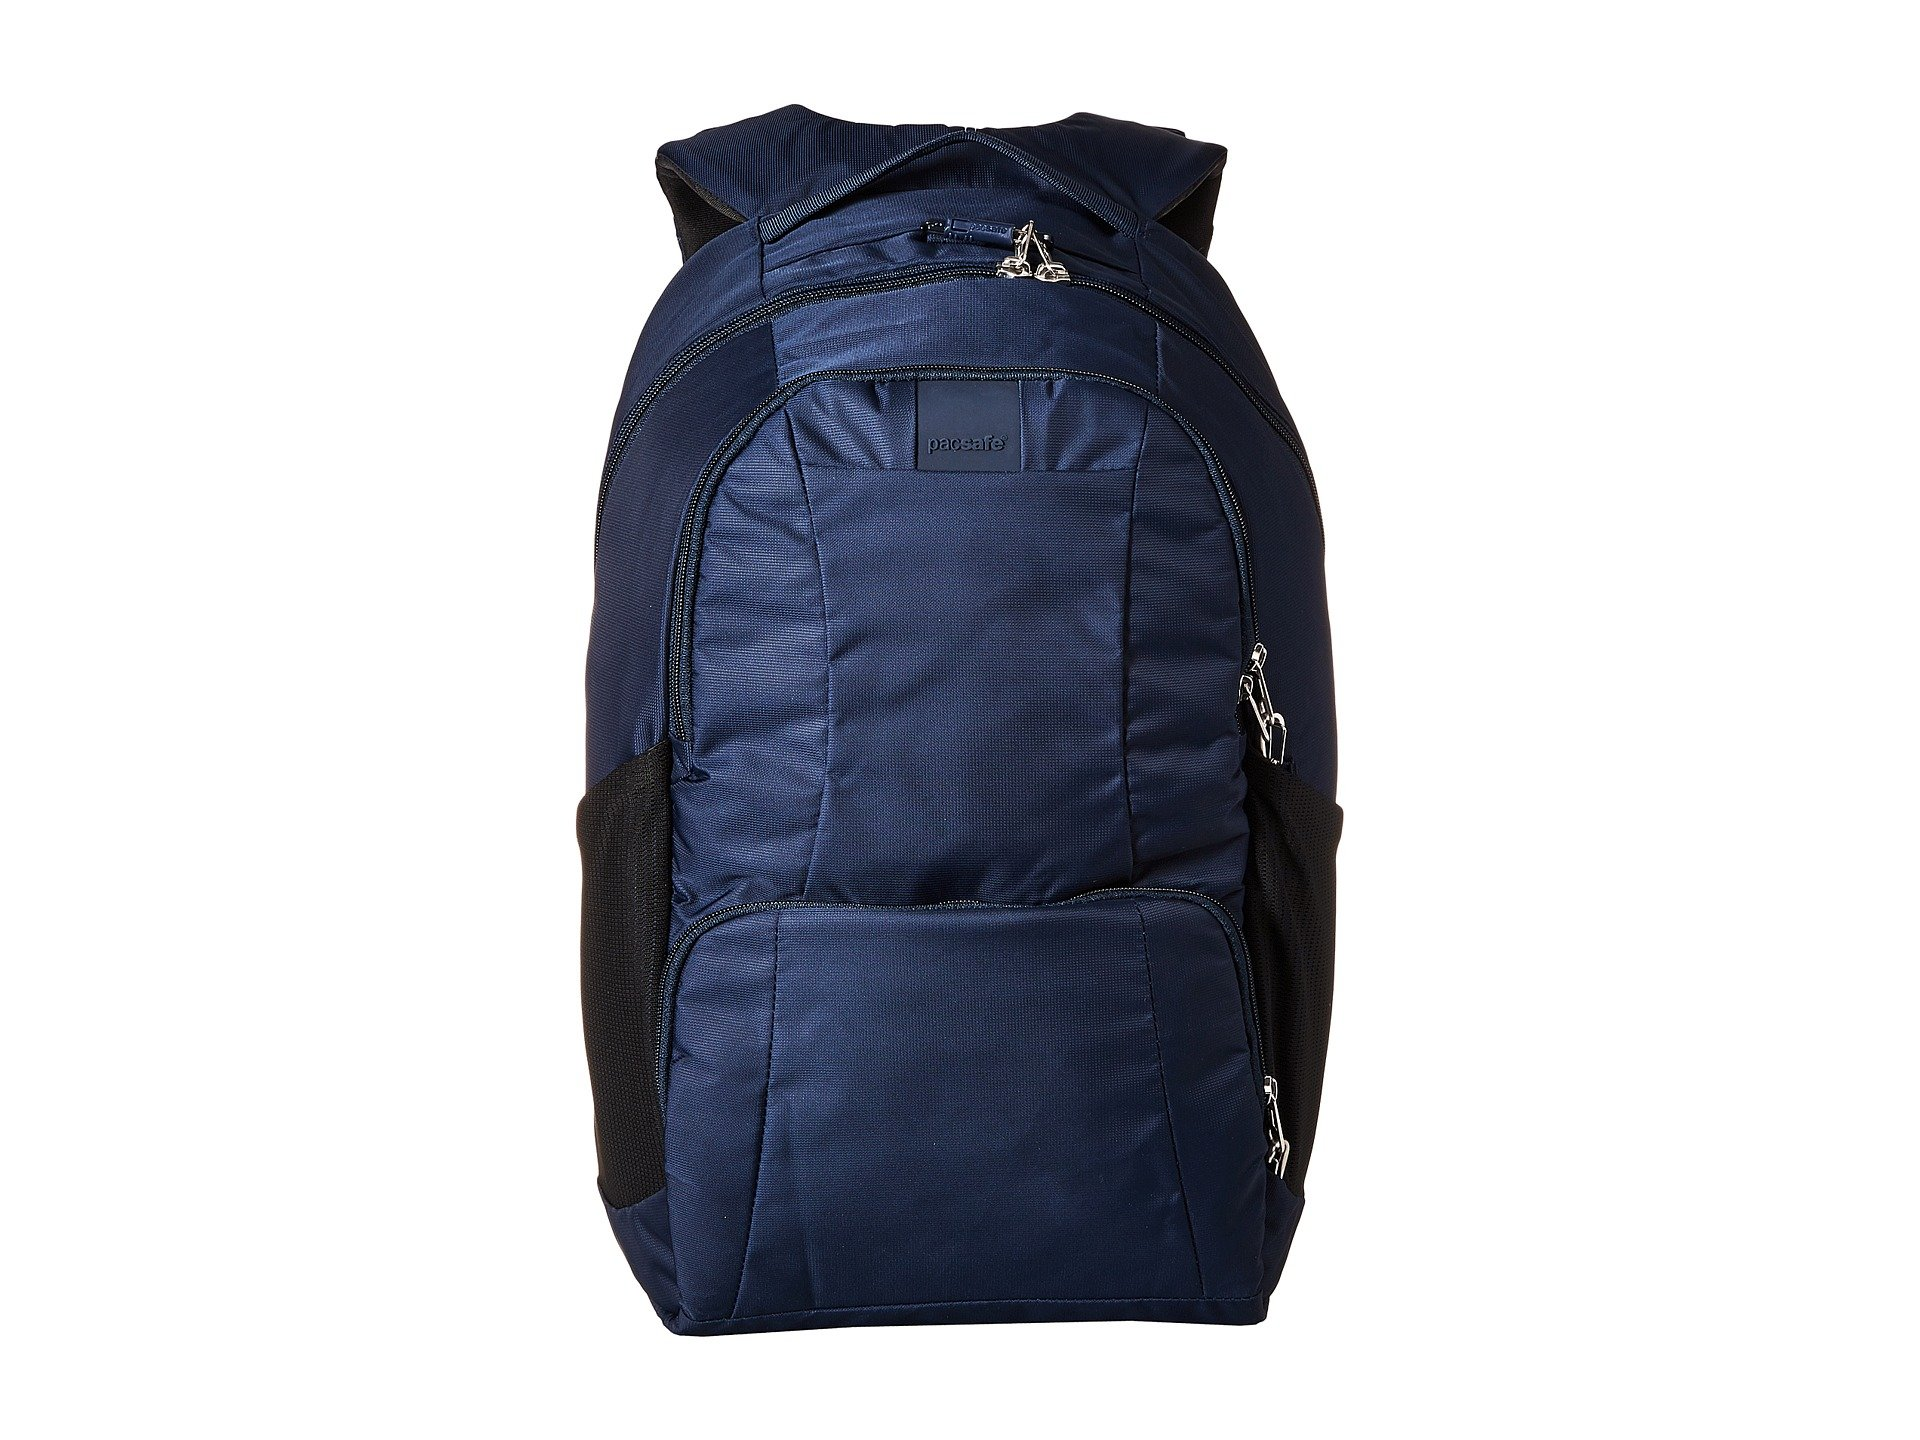 Pacsafe Metrosafe LS450 25 Liter Anti Theft Laptop Backpack - with Padded 15'' Laptop Sleeve, Adjustable Shoulder Straps, Patented Security Technology (Deep Navy)